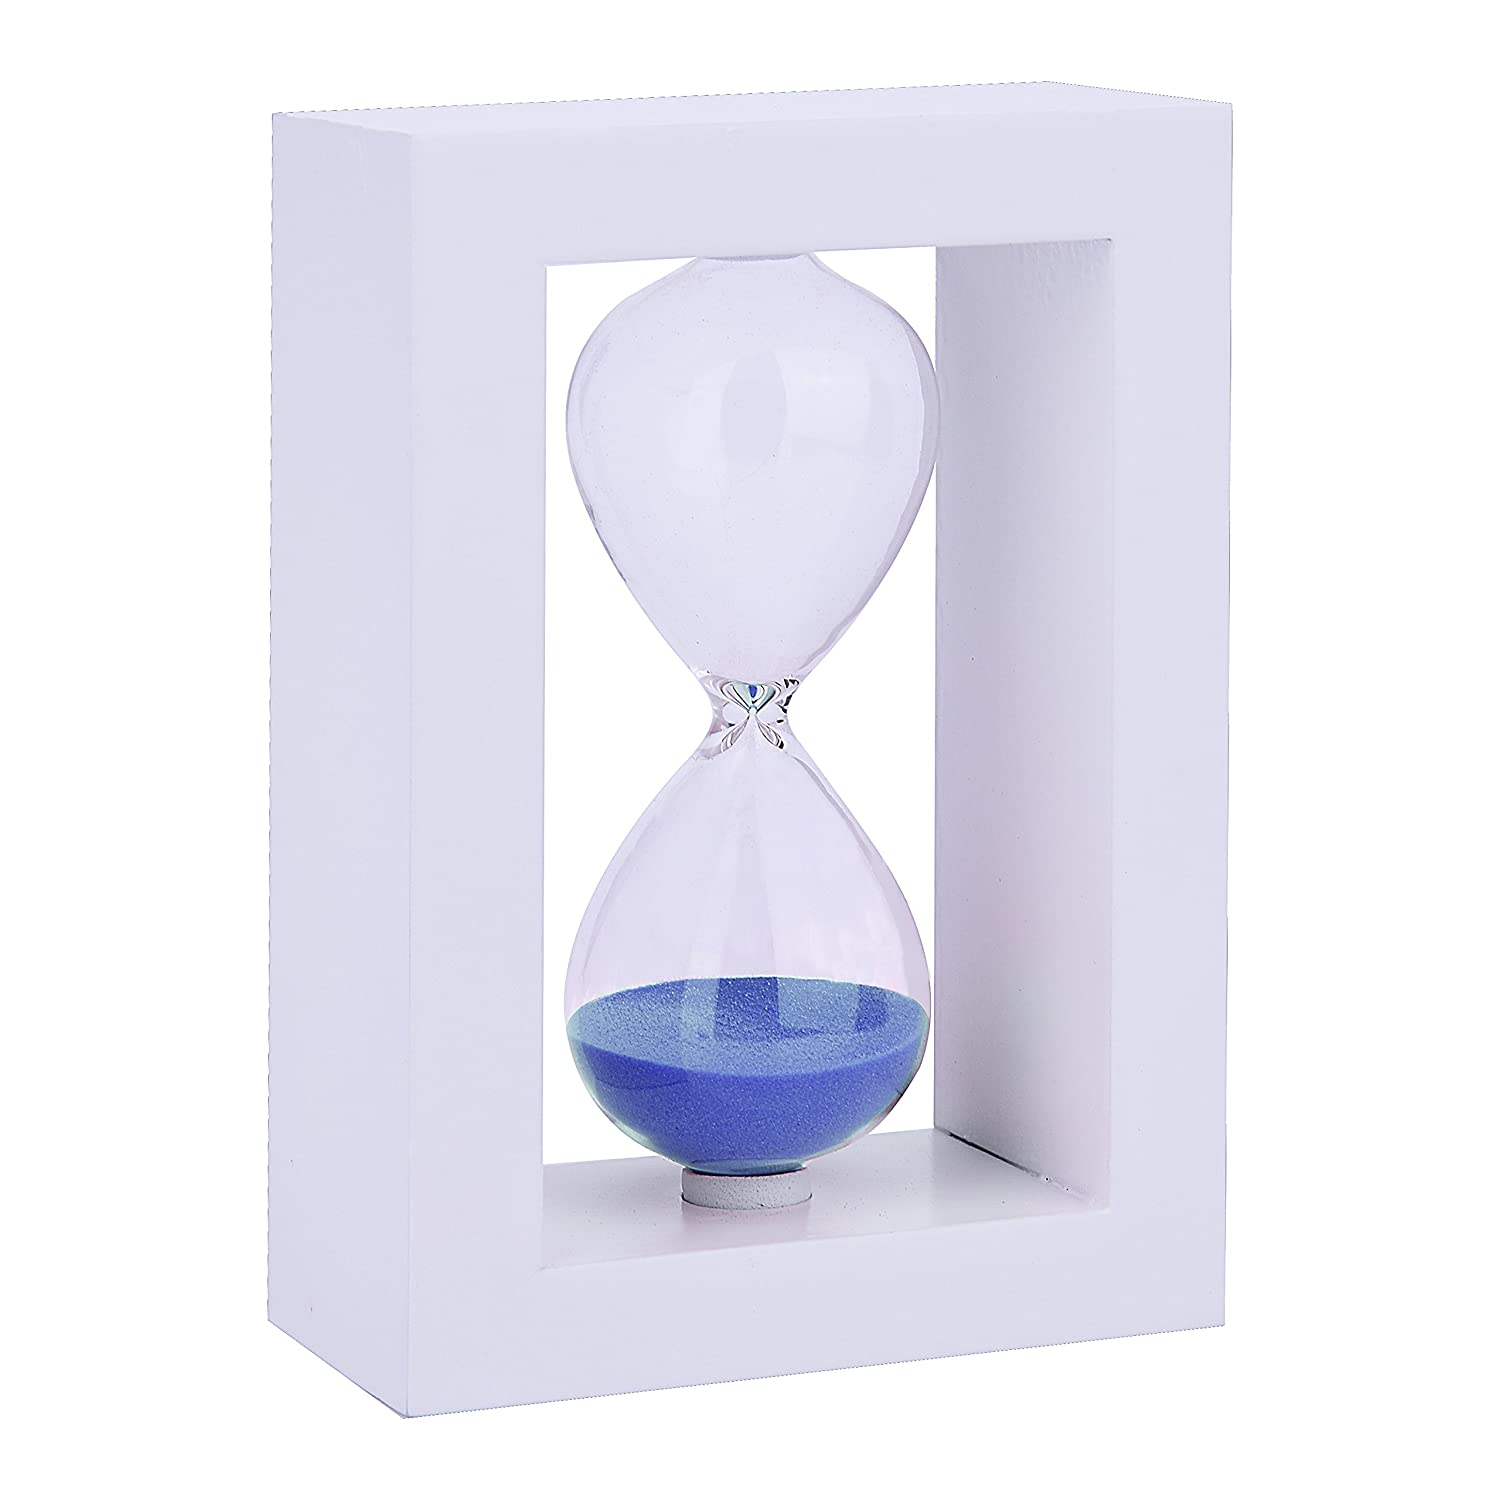 30 Minutes Wood Exquisite Sand Timer Colorful Sandglass Hourglass Sand Clock Timer for Game Decoration Kitchen Office Blue with Black 1 Pcs LiangGui LG00AJ00WK